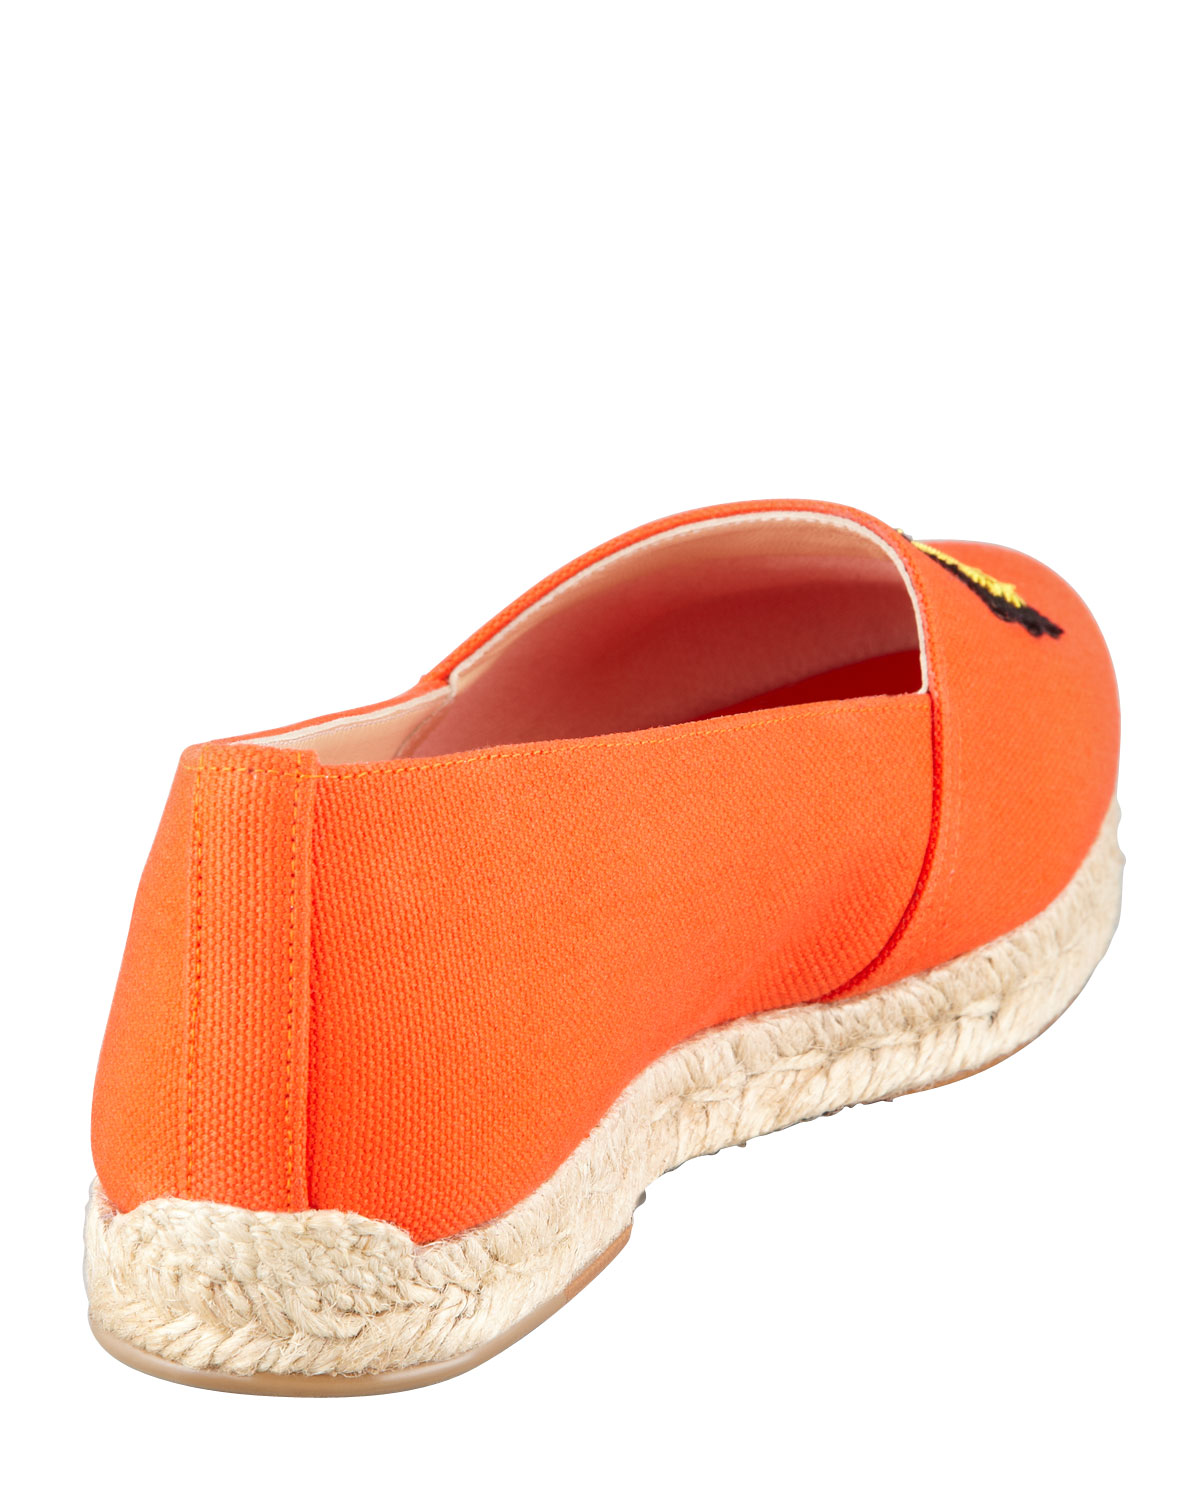 Christian Louboutin Loafers spain